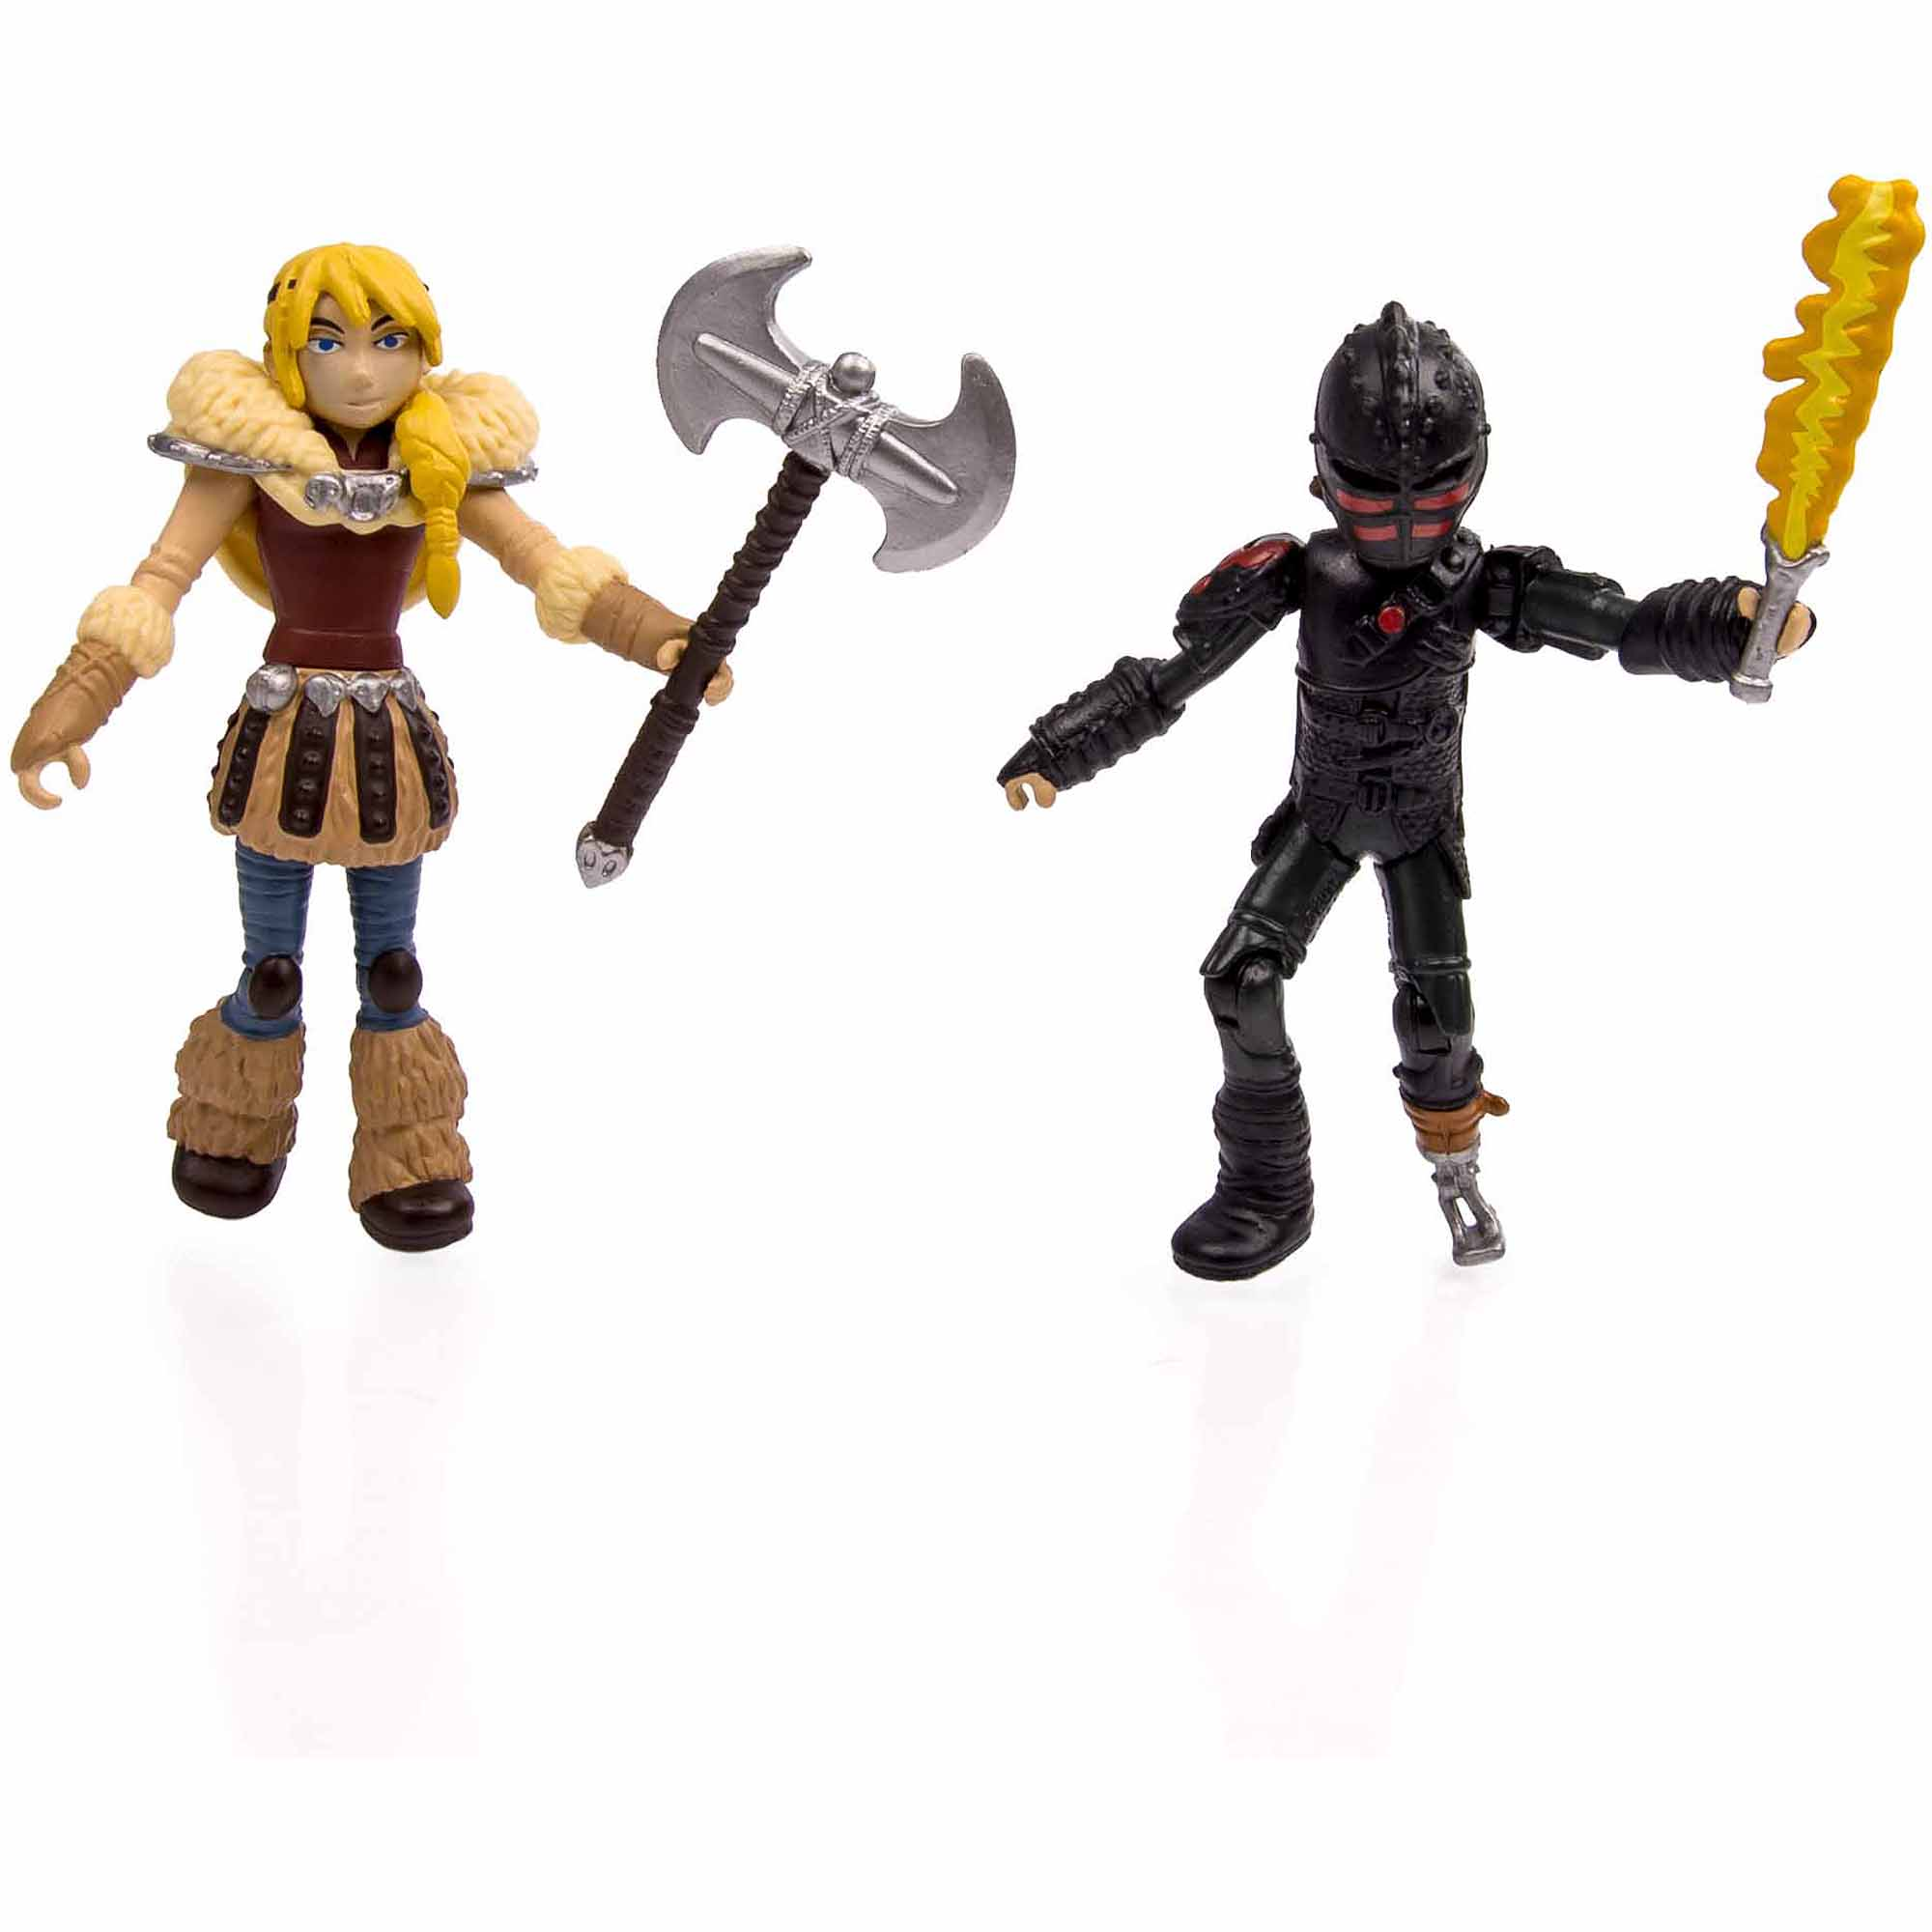 DreamWorks Dragons: How to Train Your Dragon 2 Viking Warrior, 2-Pack, Hiccup vs. Drago